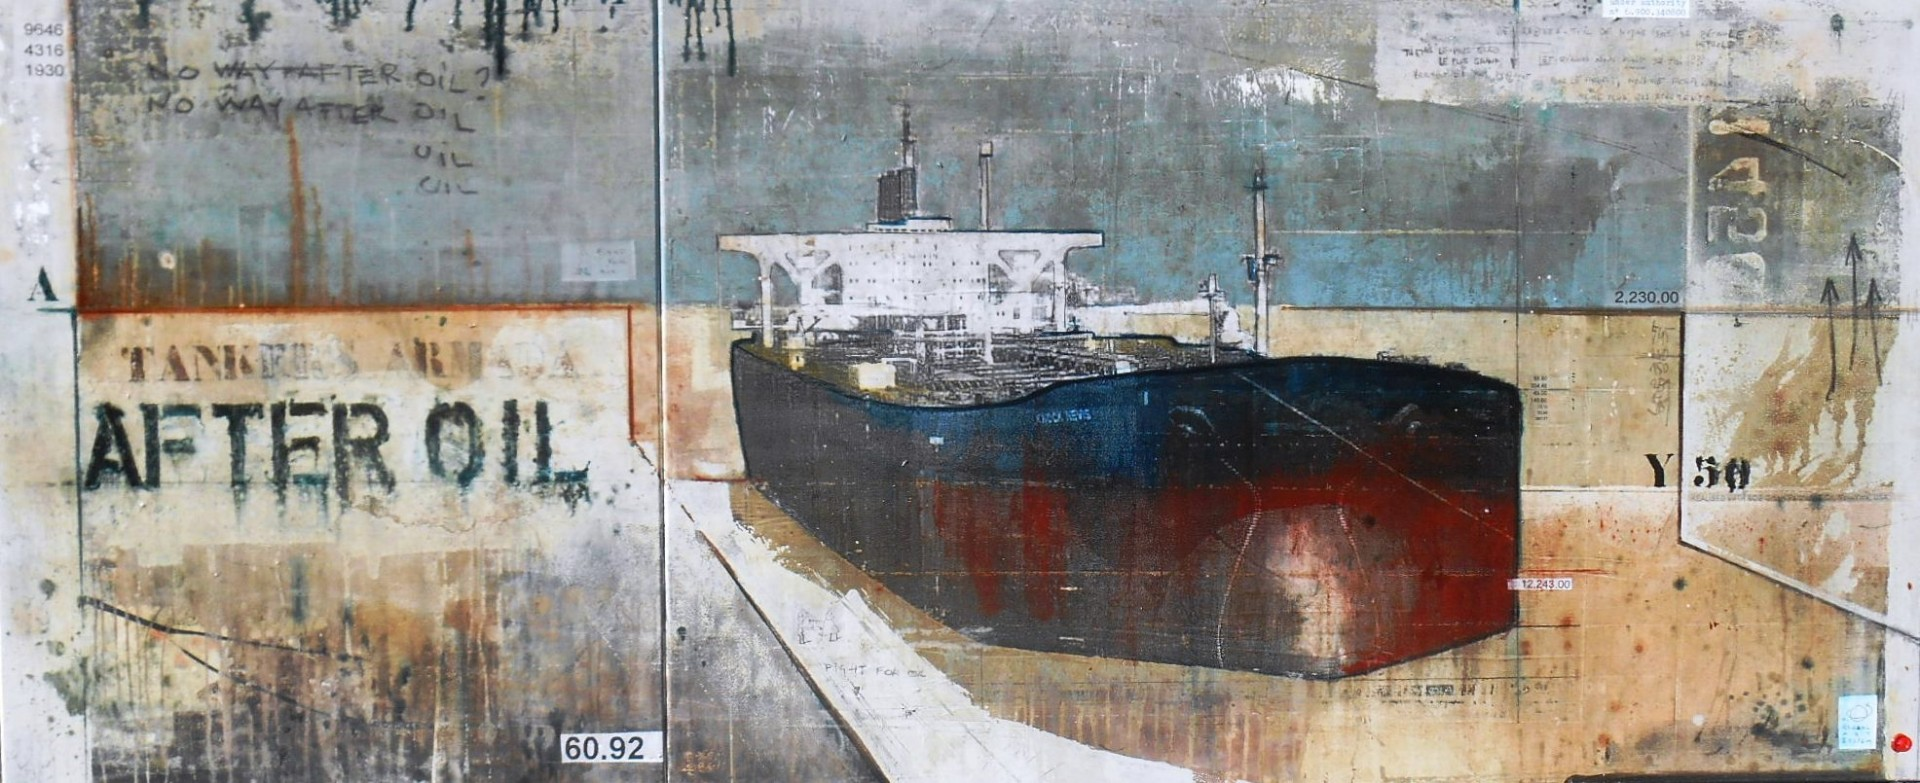 After Oil - Tankers Armada - collage photo, huile, acrylique sur toile - 100 x 240 cm - 2014